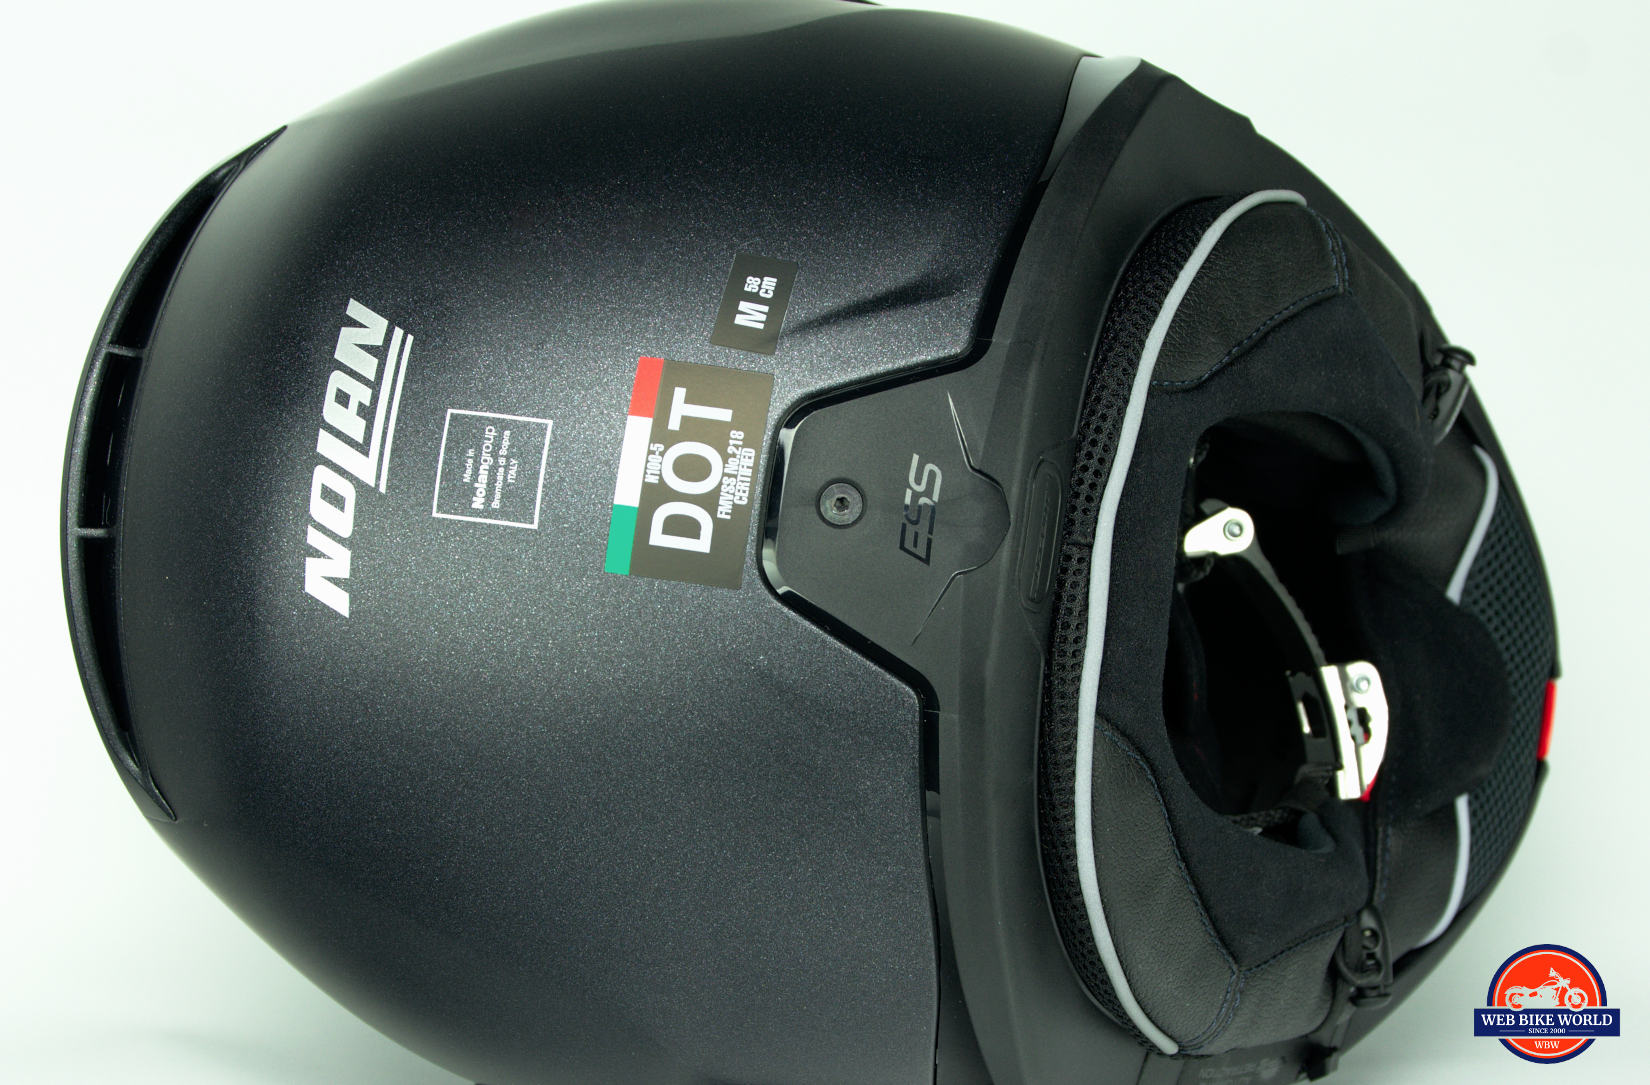 Rear view of the DOT sticker on the Nolan N100-5 helmet with N-Com B901L installed.